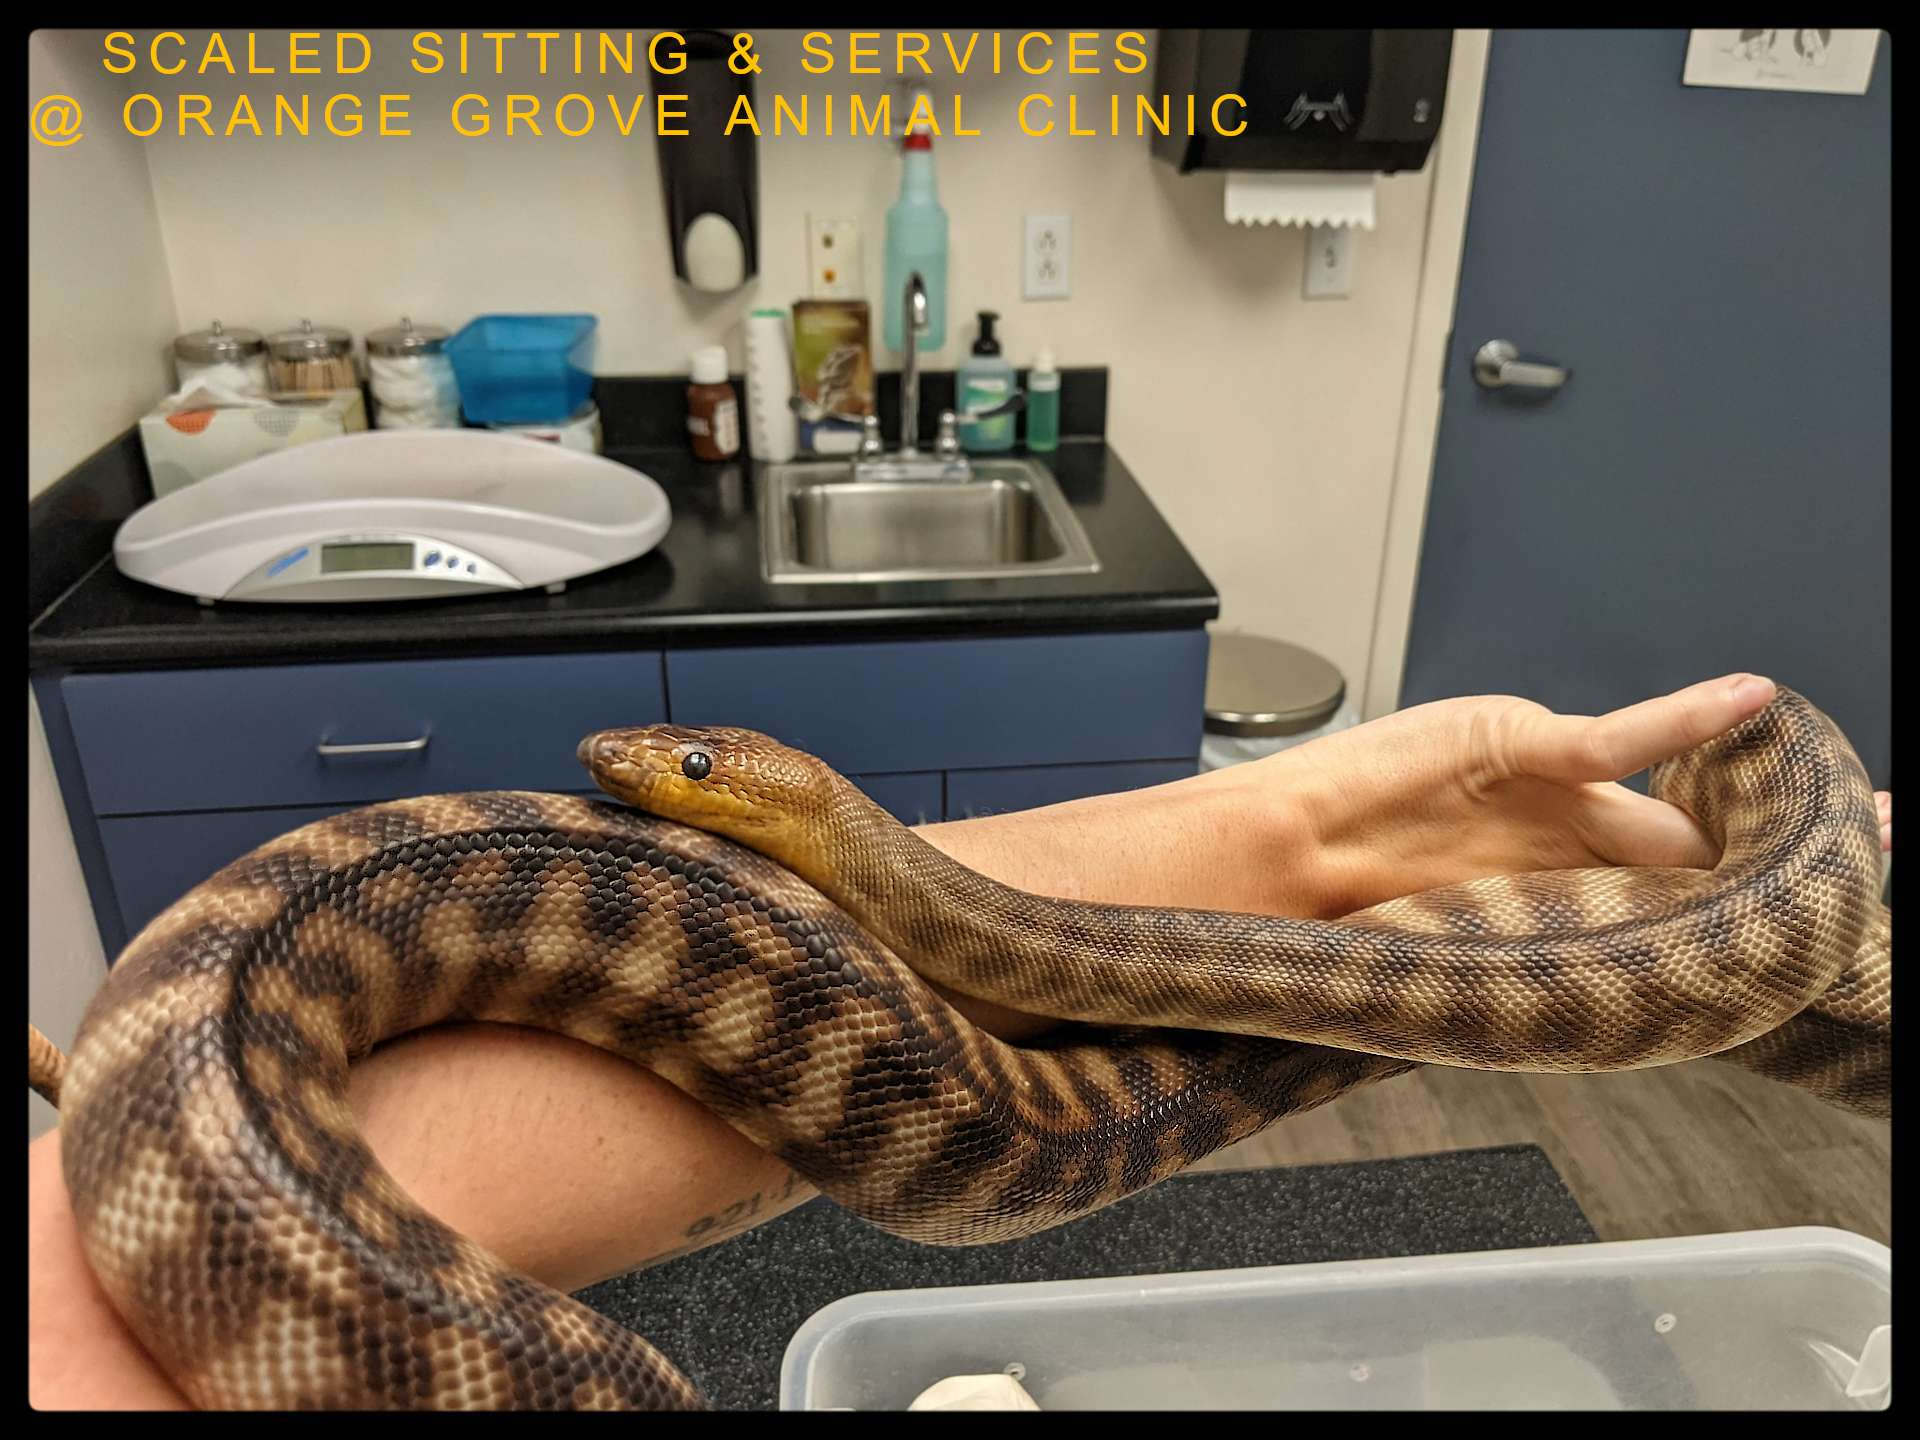 Woma python laying across an arm at exotic vet clinic for medical treatment